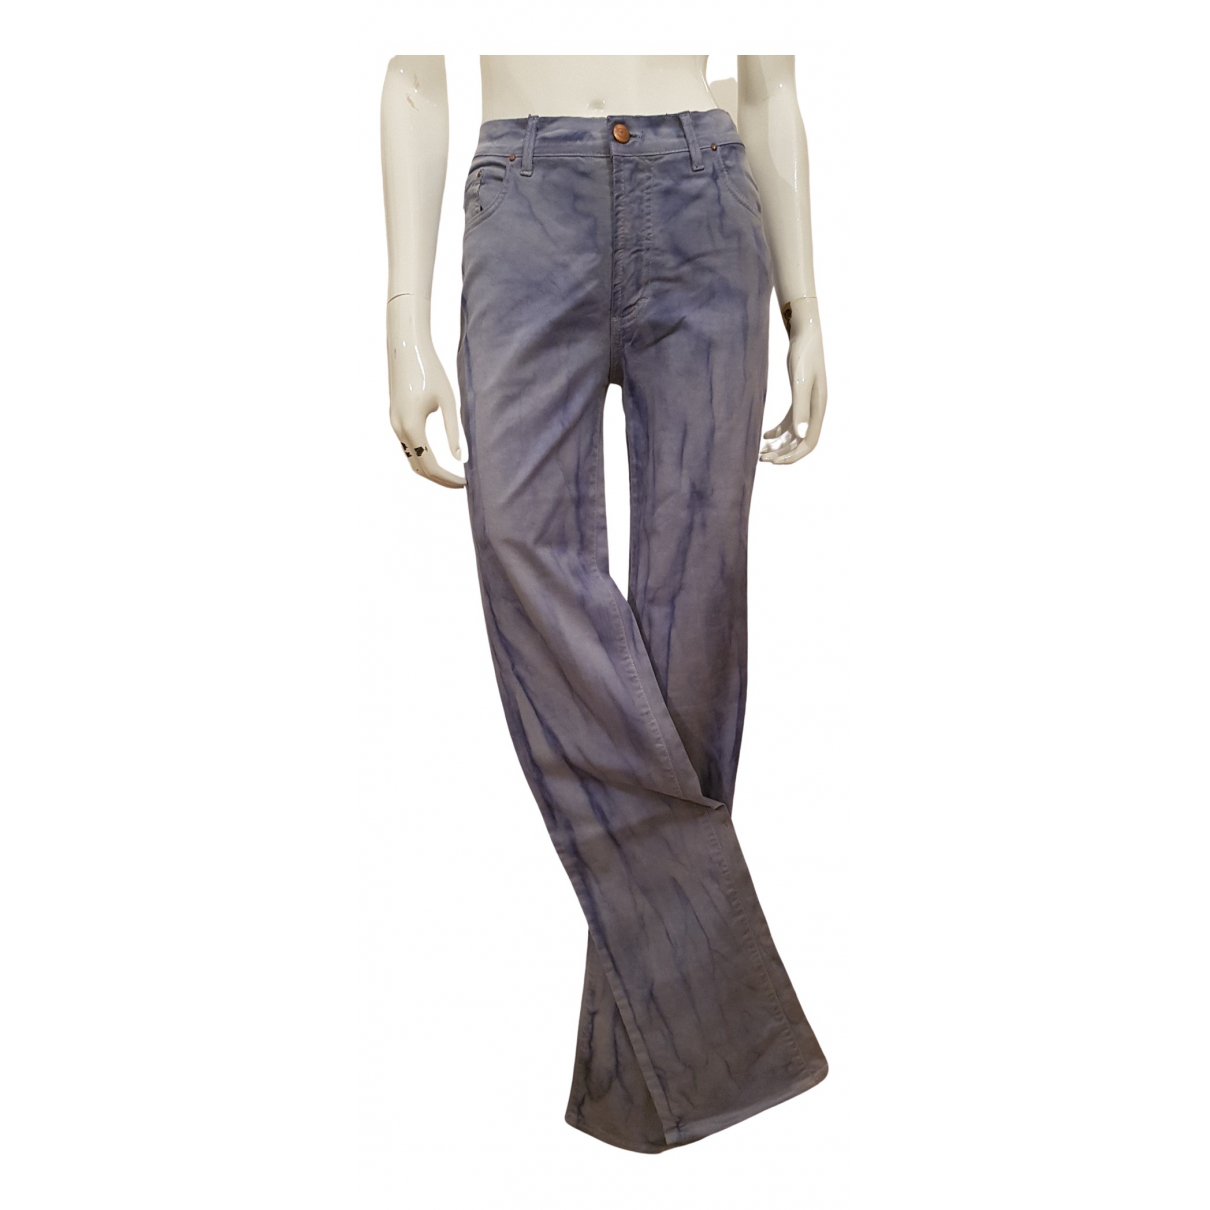 Just Cavalli \N Blue Denim - Jeans Trousers for Women 42 IT